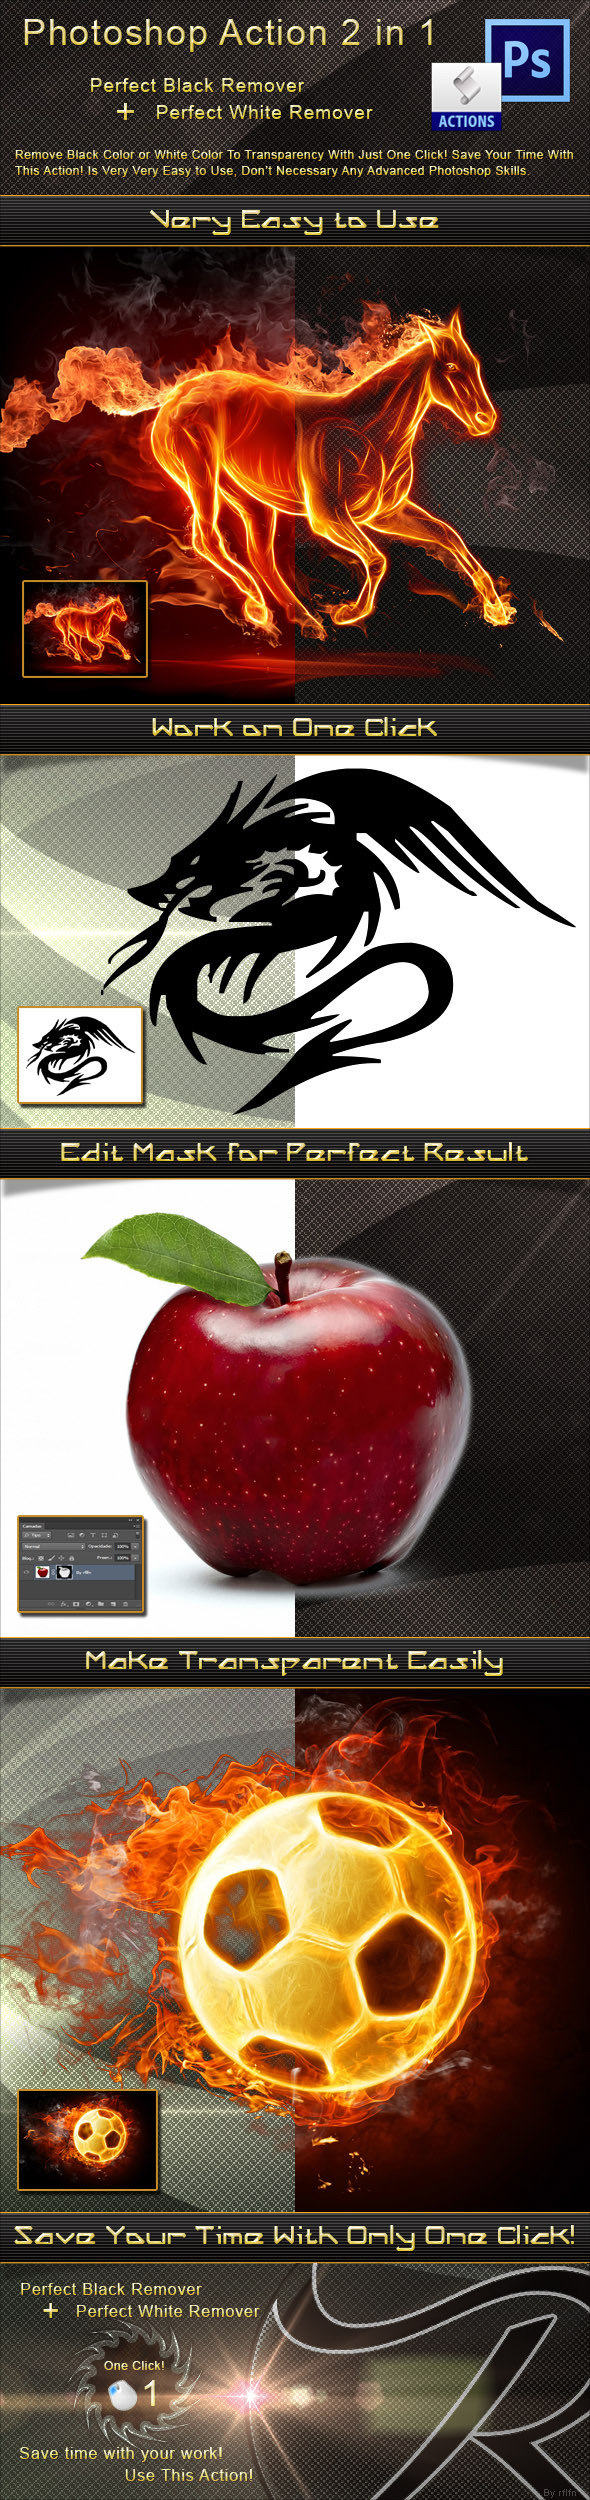 Perfect Black and White Remover - Utilities Actions